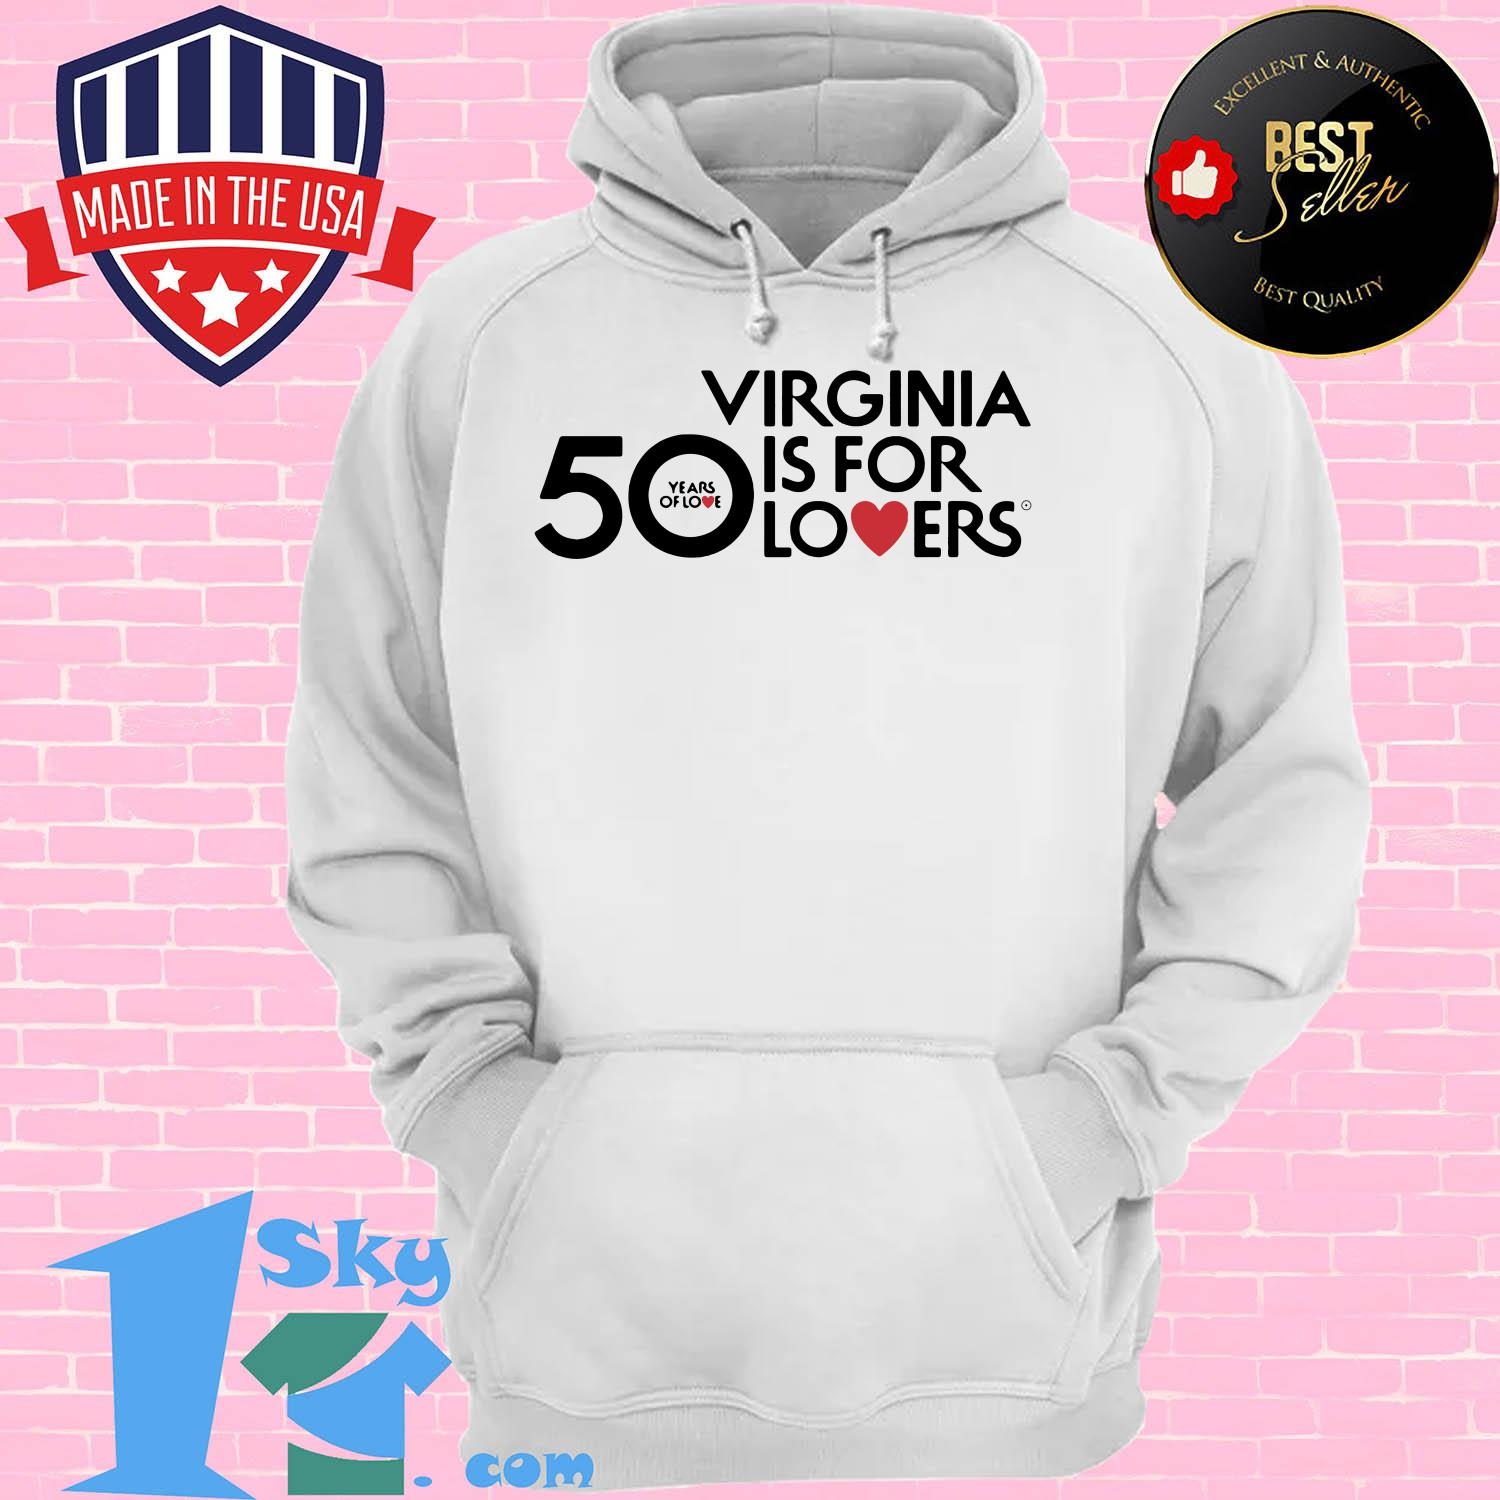 50 years of love virginia is for lovers sweatshirt - 50 Years Of Love Virginia Is For Lovers shirt